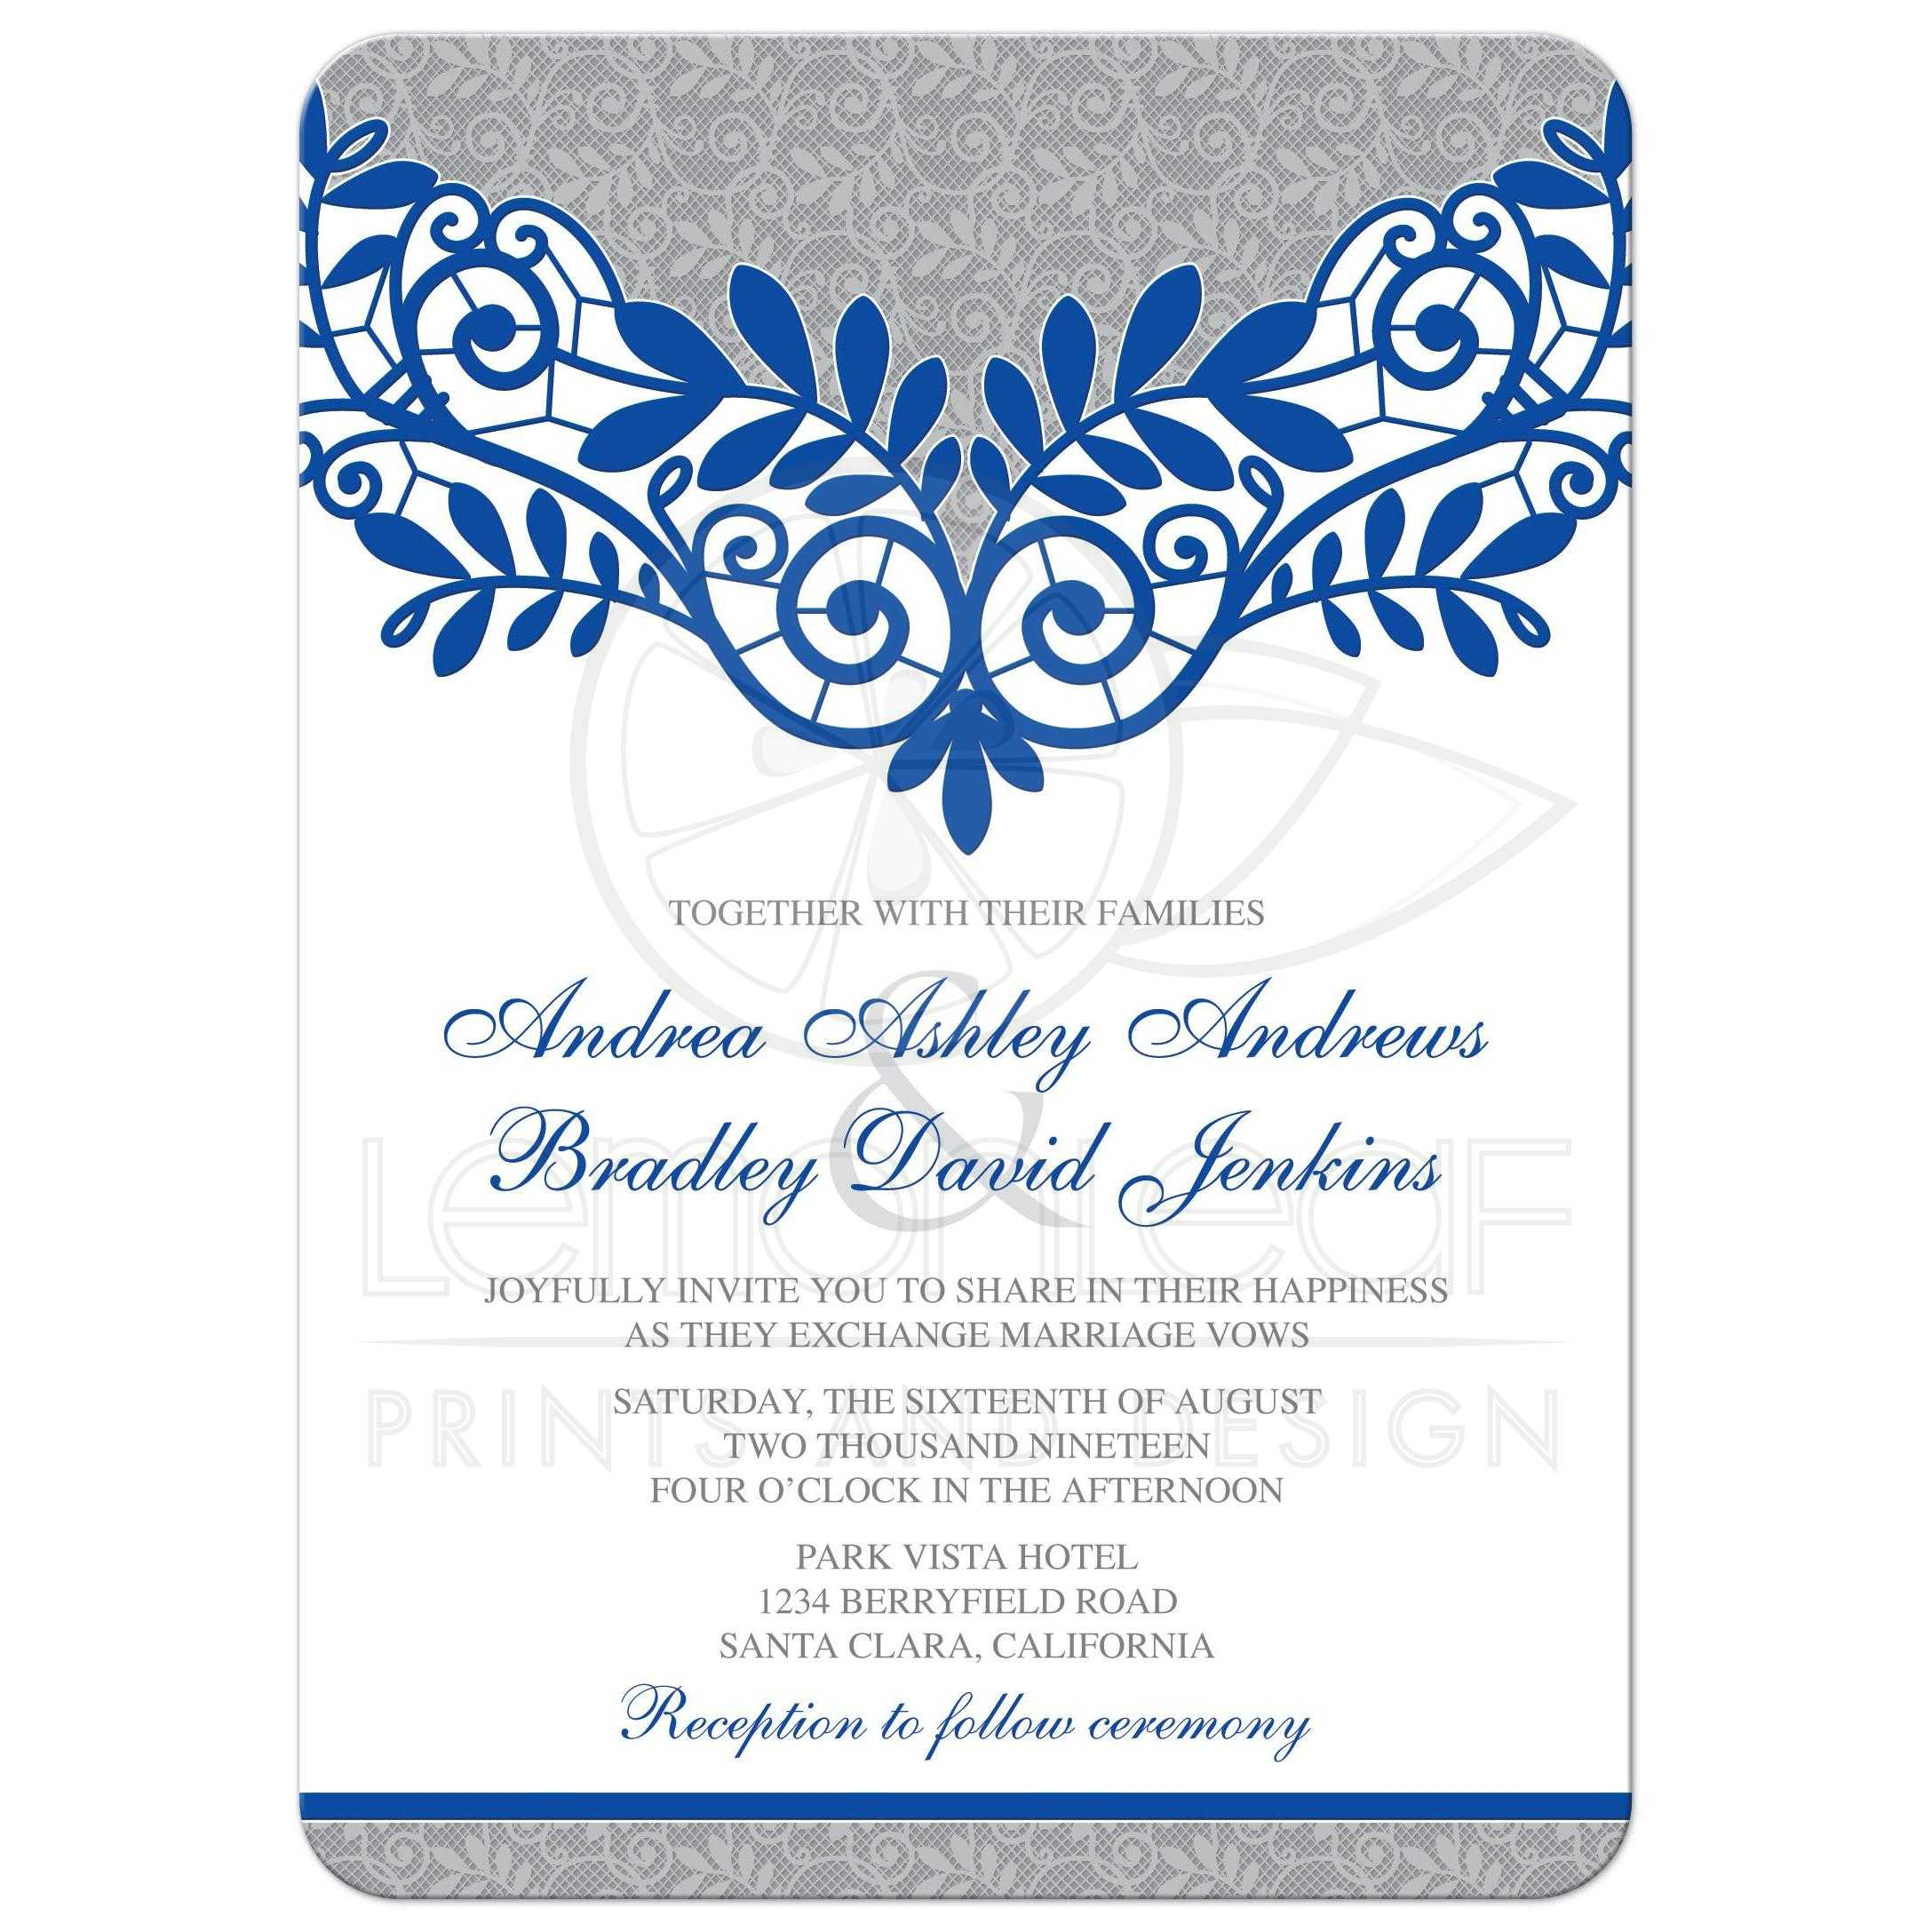 Wedding Invitations Blue And Silver: Royal Blue Silver Wedding Invitation Royal Blue Silver